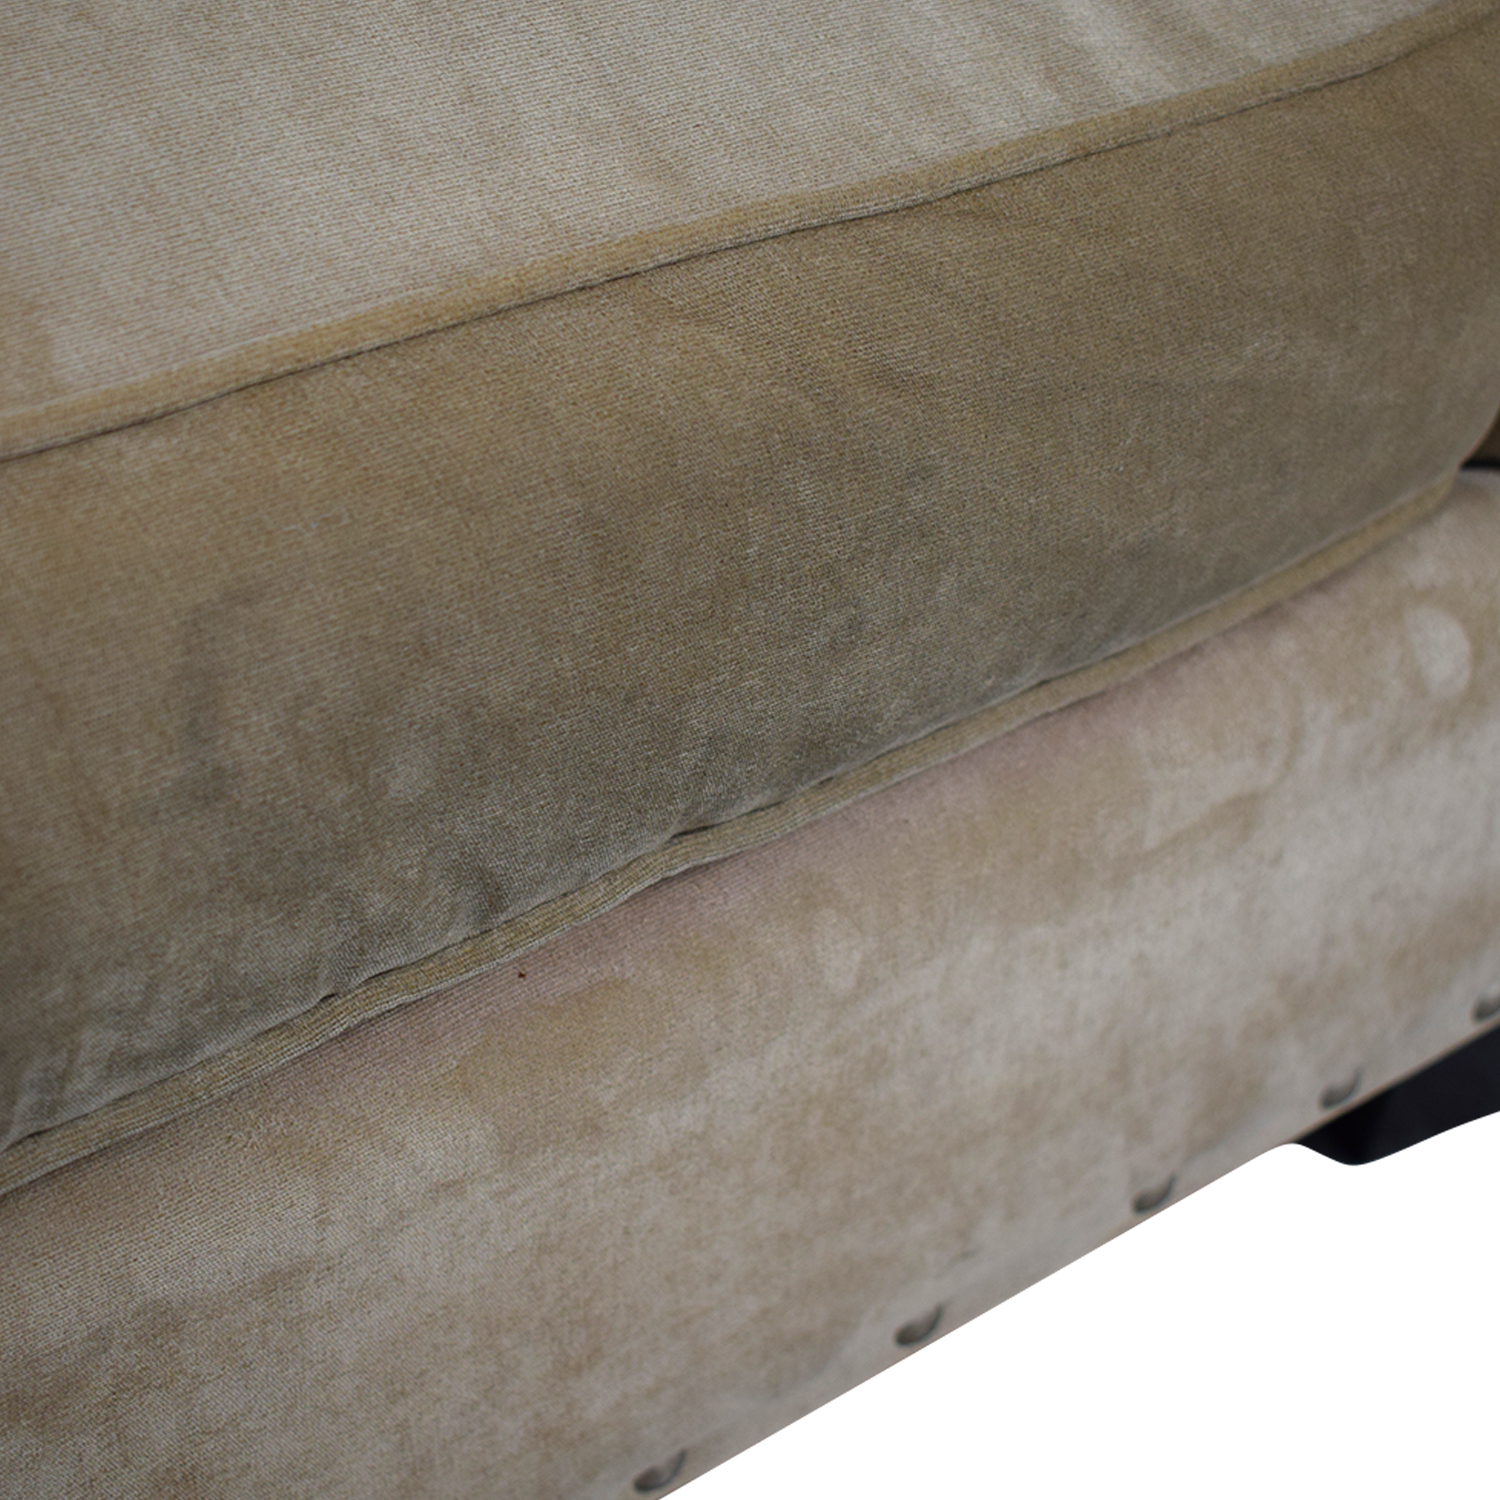 Raymour & Flanigan Raymour & Flanigan Cindy Crawford Beige Suede Loveseat SUEDE PAIGE